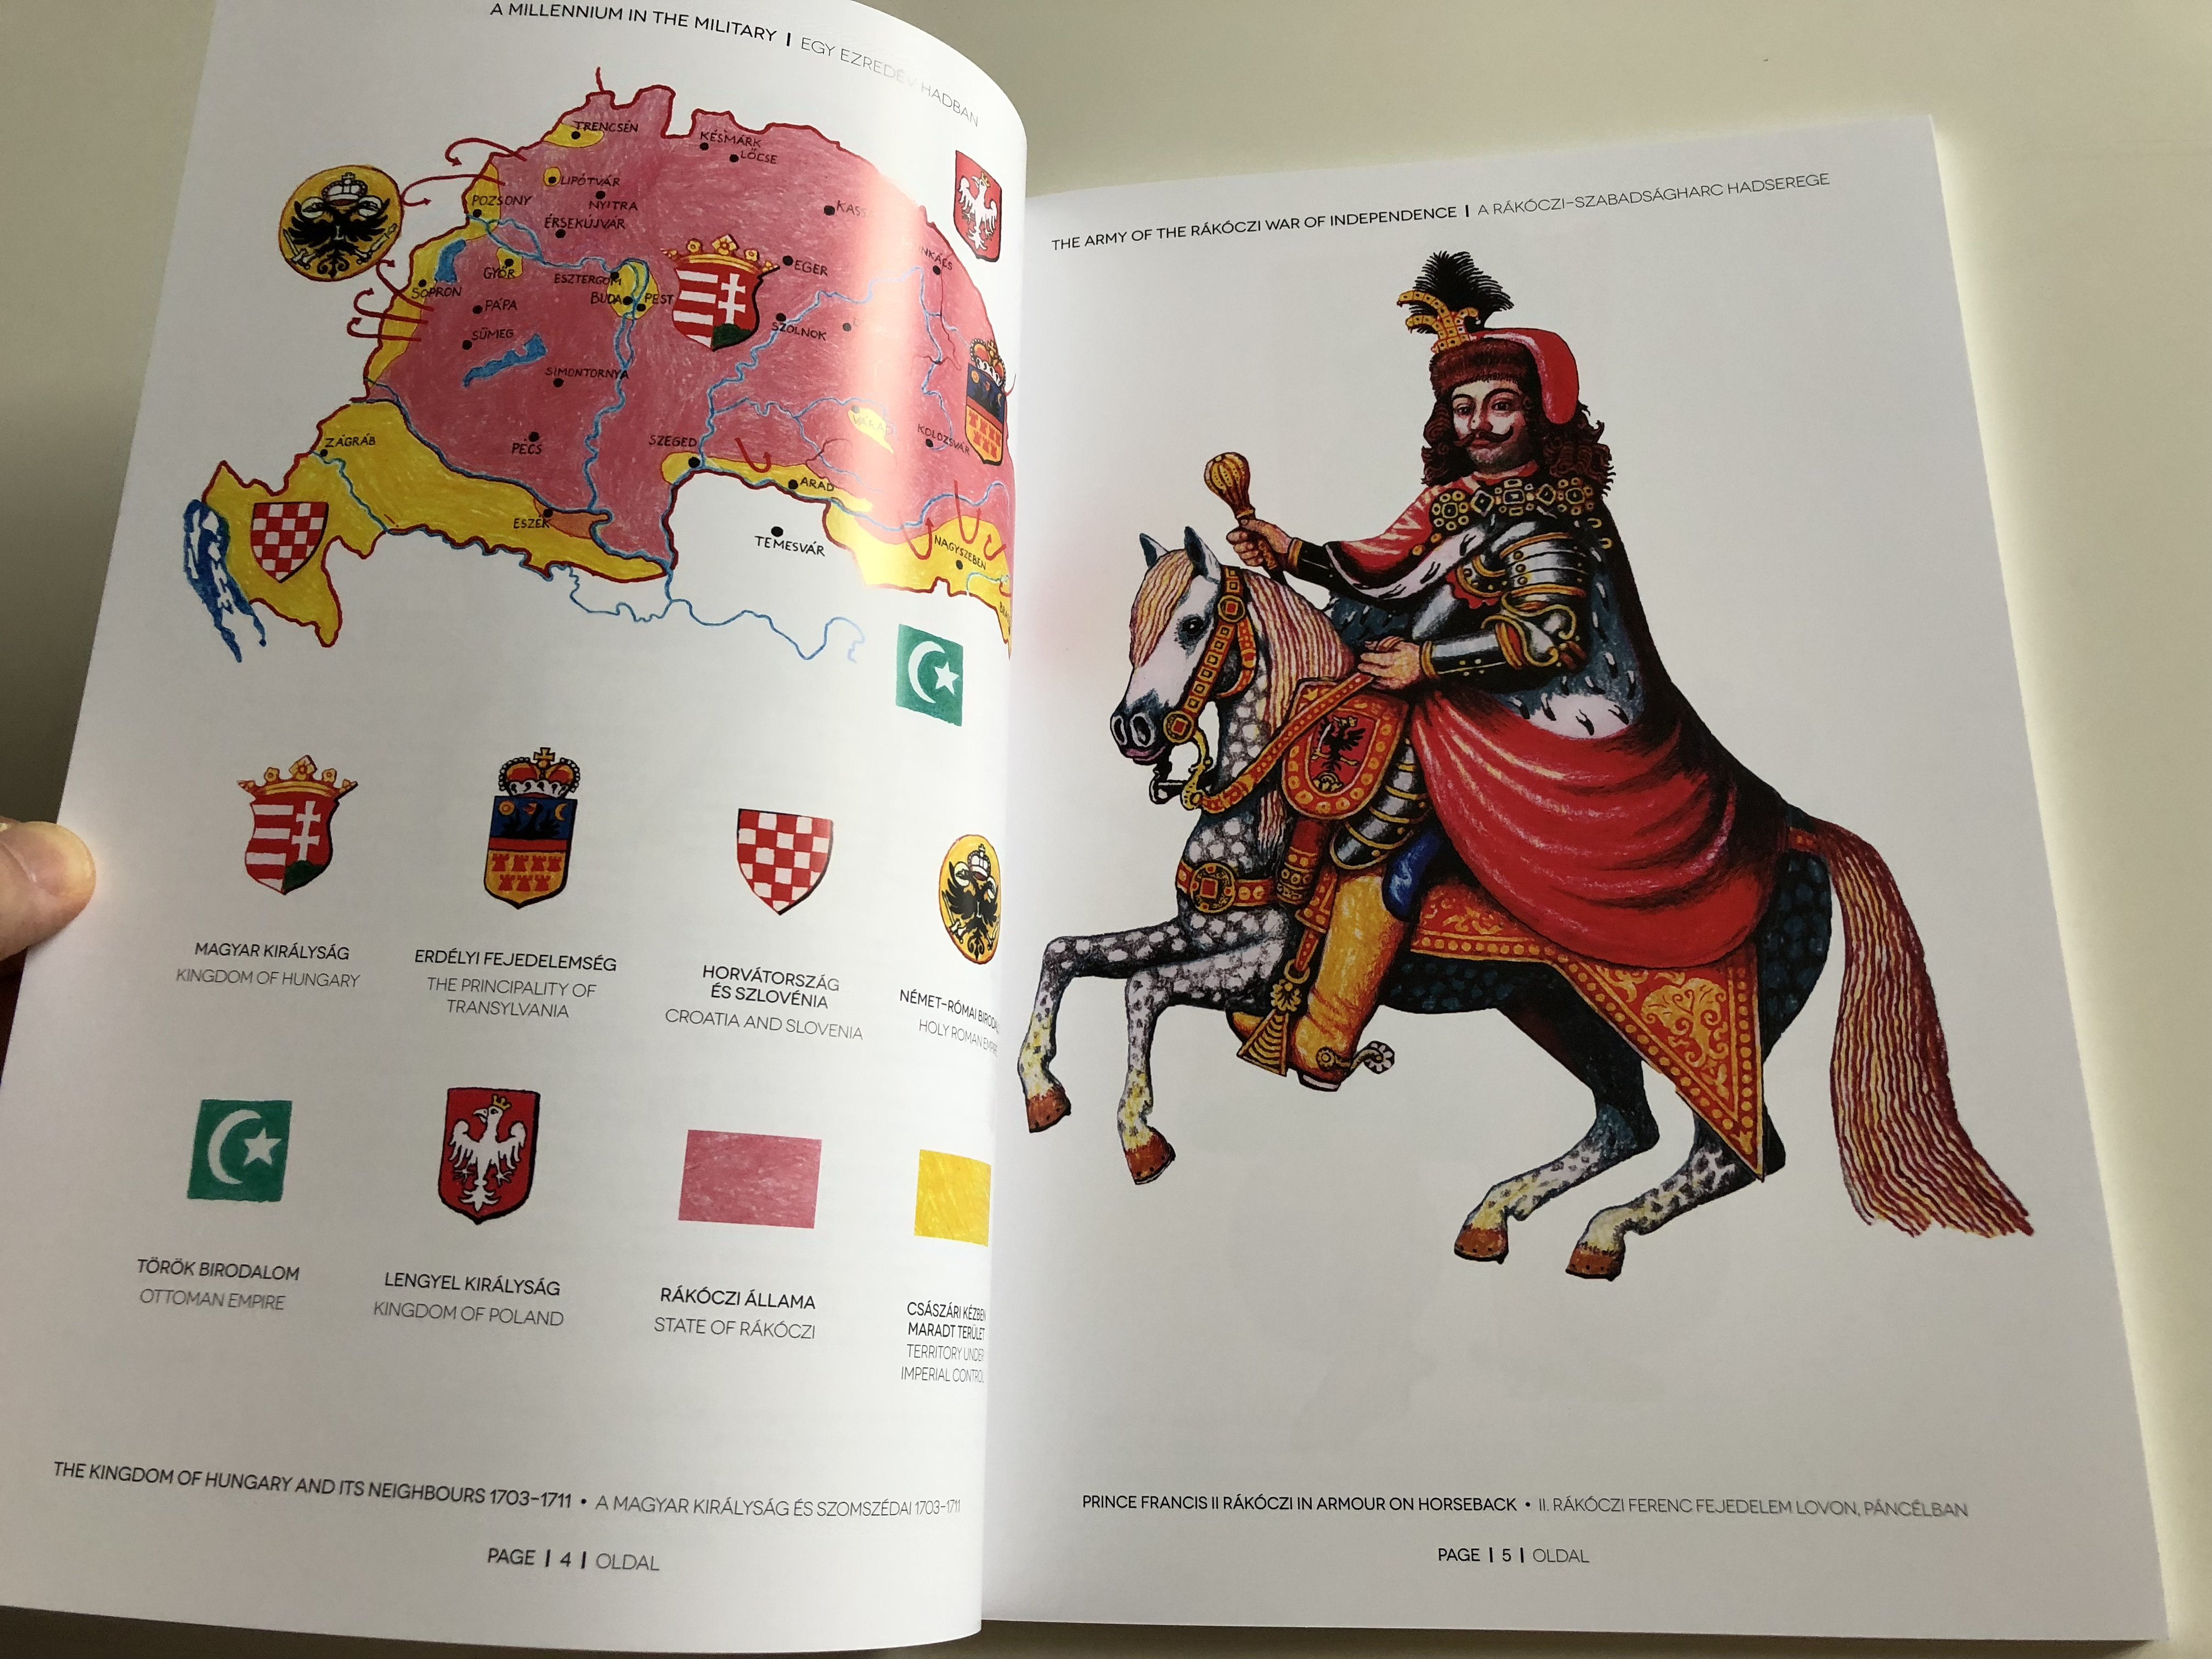 the-army-of-the-r-k-czi-war-of-independence-1703-1711-by-gy-z-somogyi-a-r-k-czi-szabads-gharc-hadserege-1703-1711-a-millennium-in-the-military-egy-ezred-v-hadban-paperback-2018-hm-zr-nyi-3-.jpg